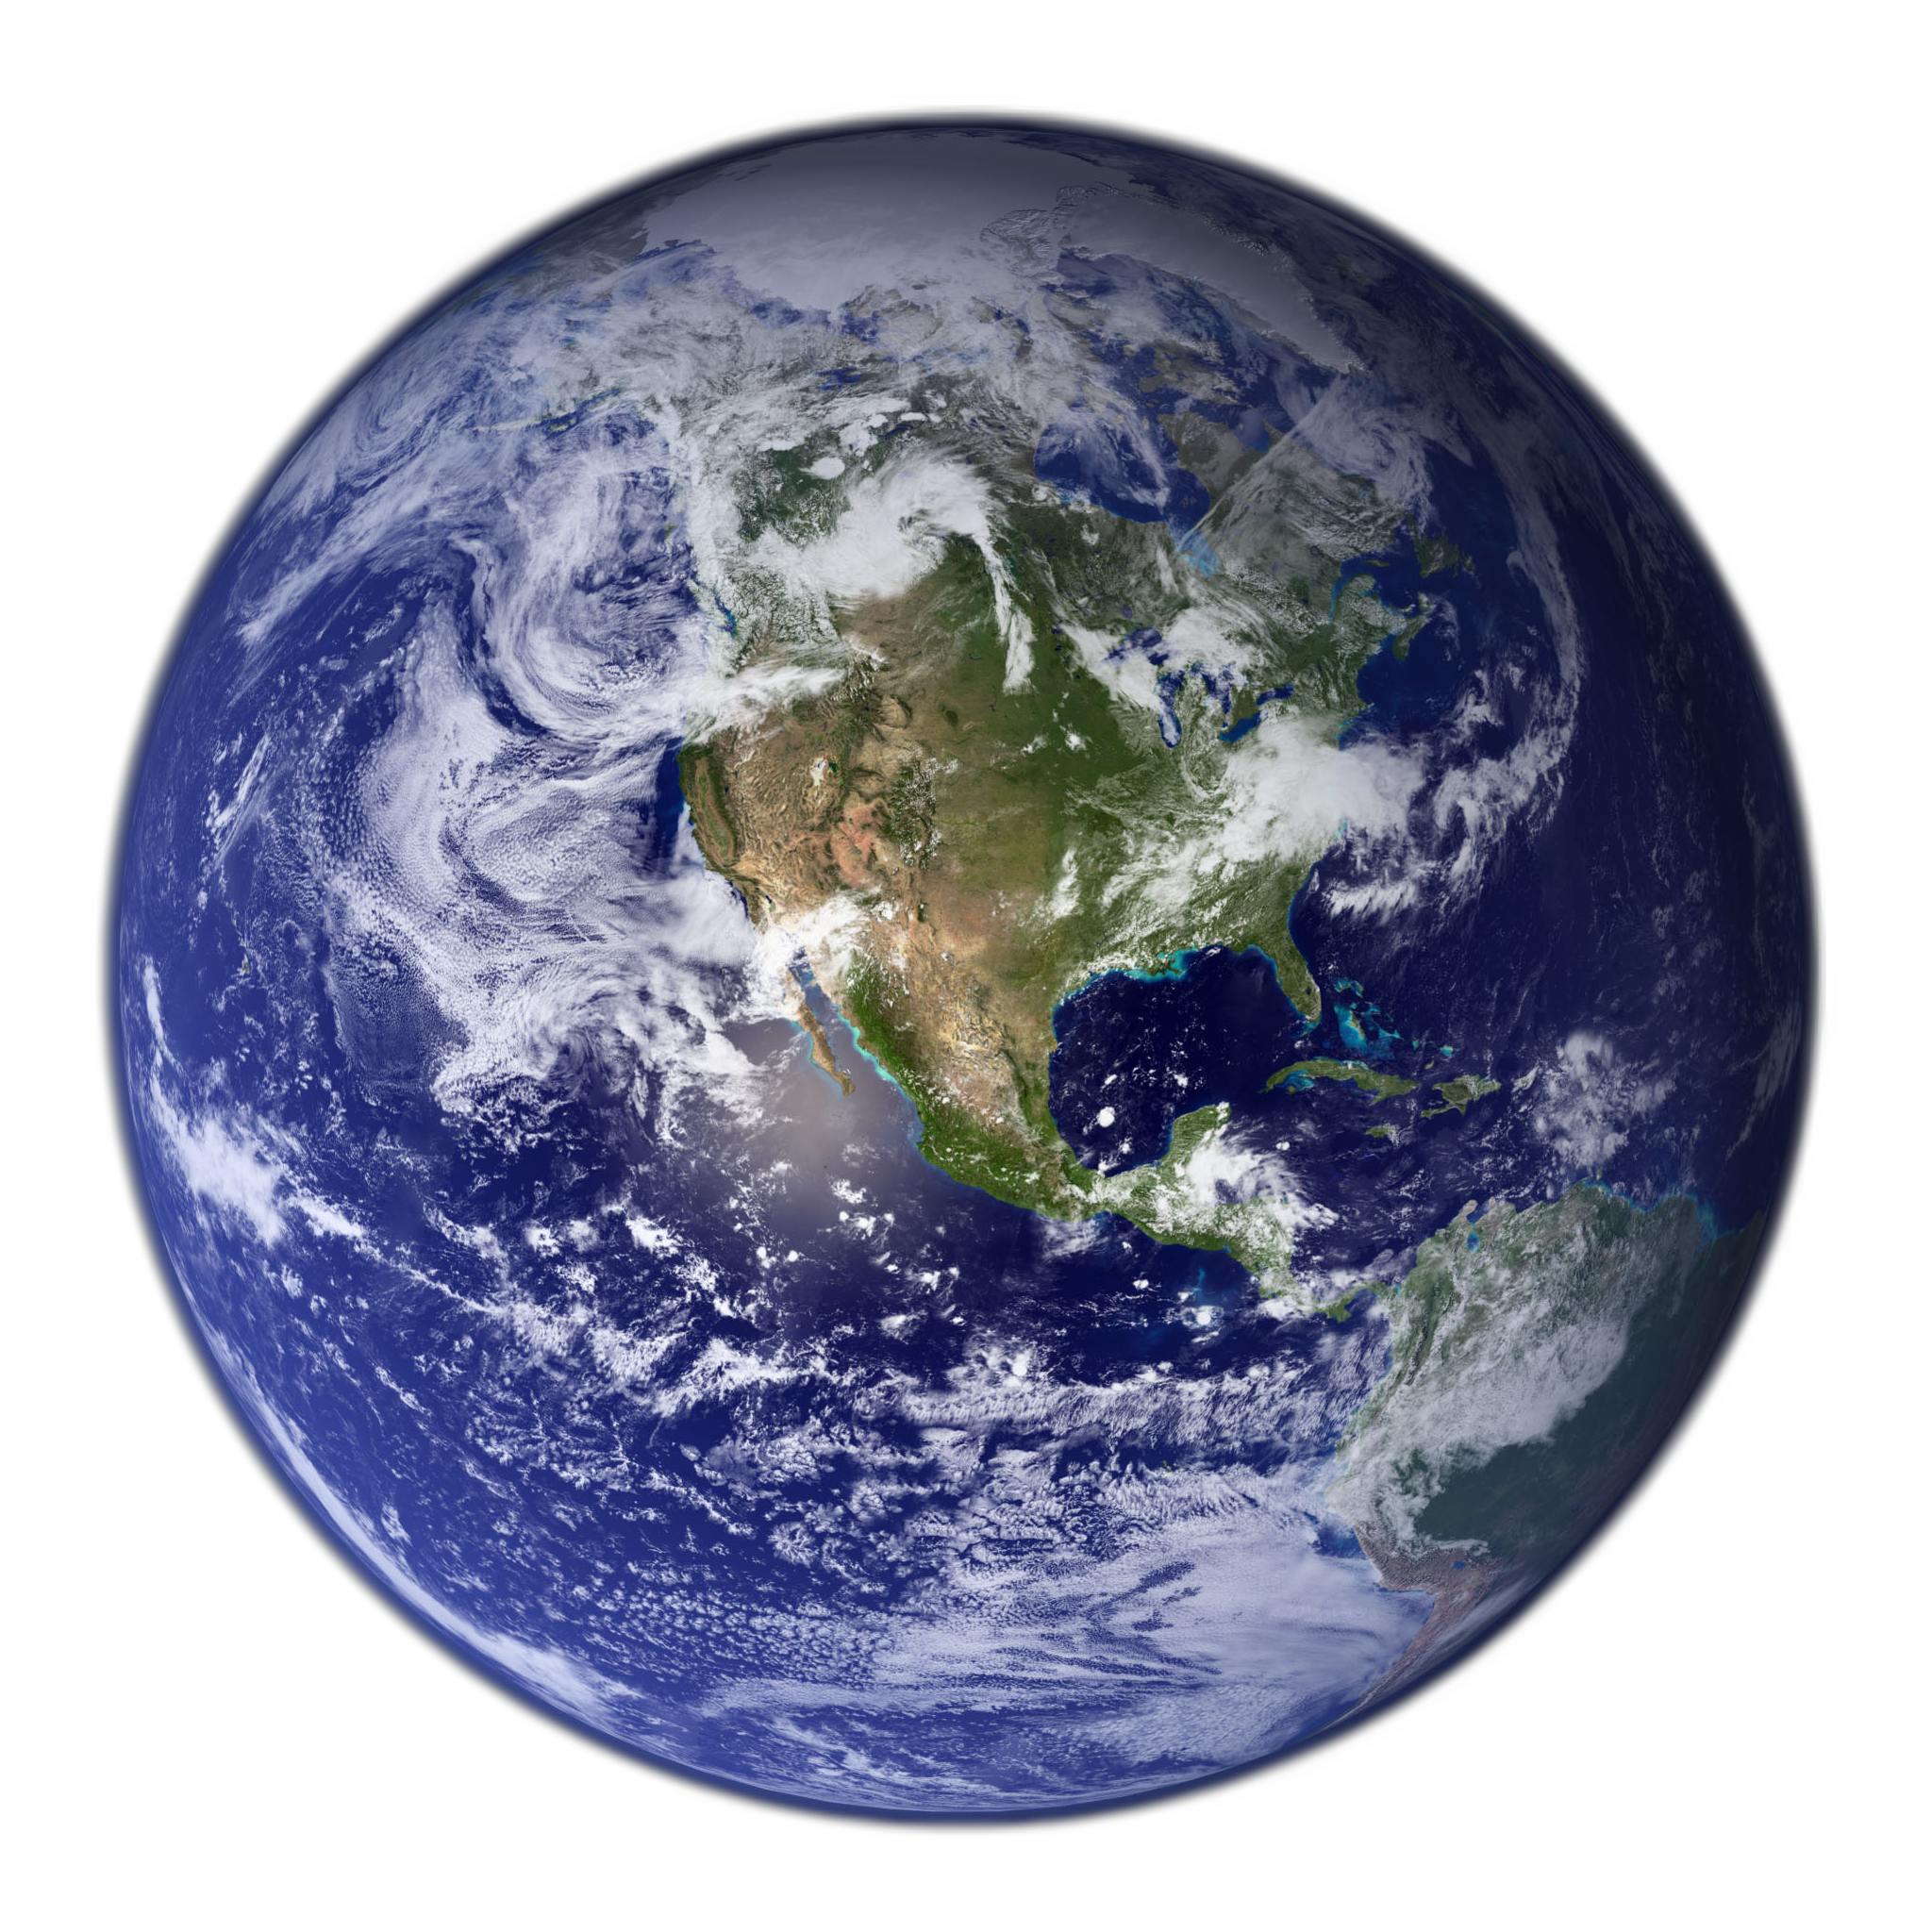 HQ Earth Wallpapers | File 5388.81Kb